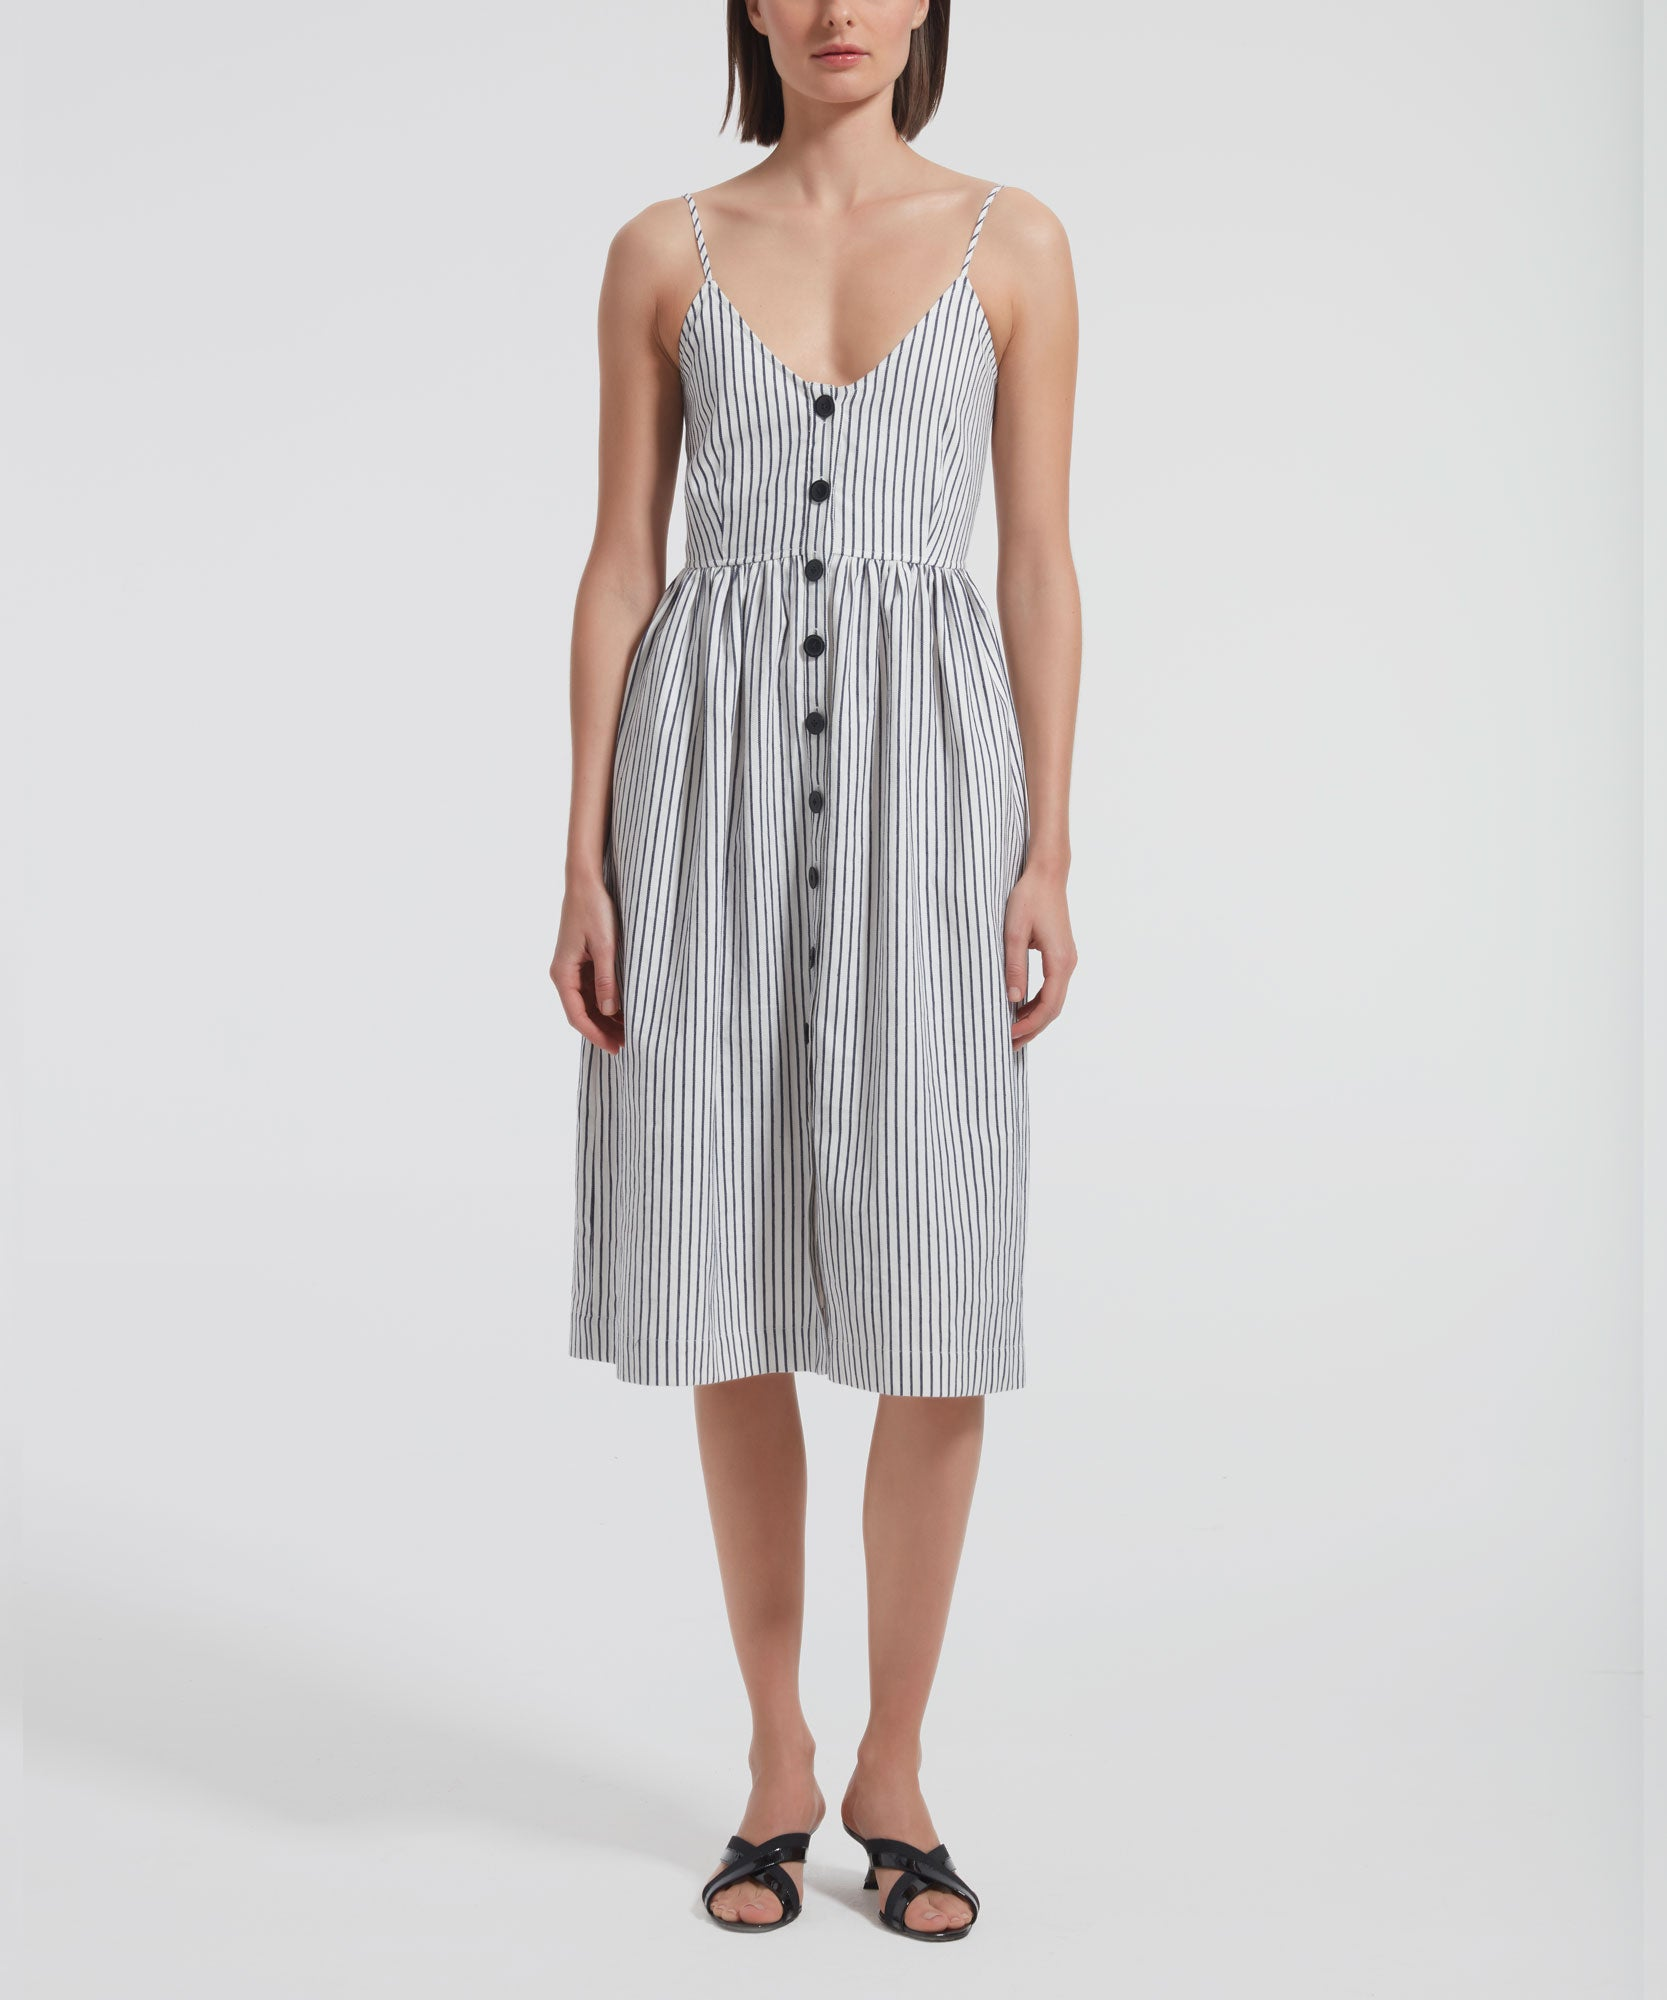 Chalk and Navy Striped Linen Cotton Button Front Tank Dress - Women's Sleeveless Dress by ATM Anthony Thomas Melillo